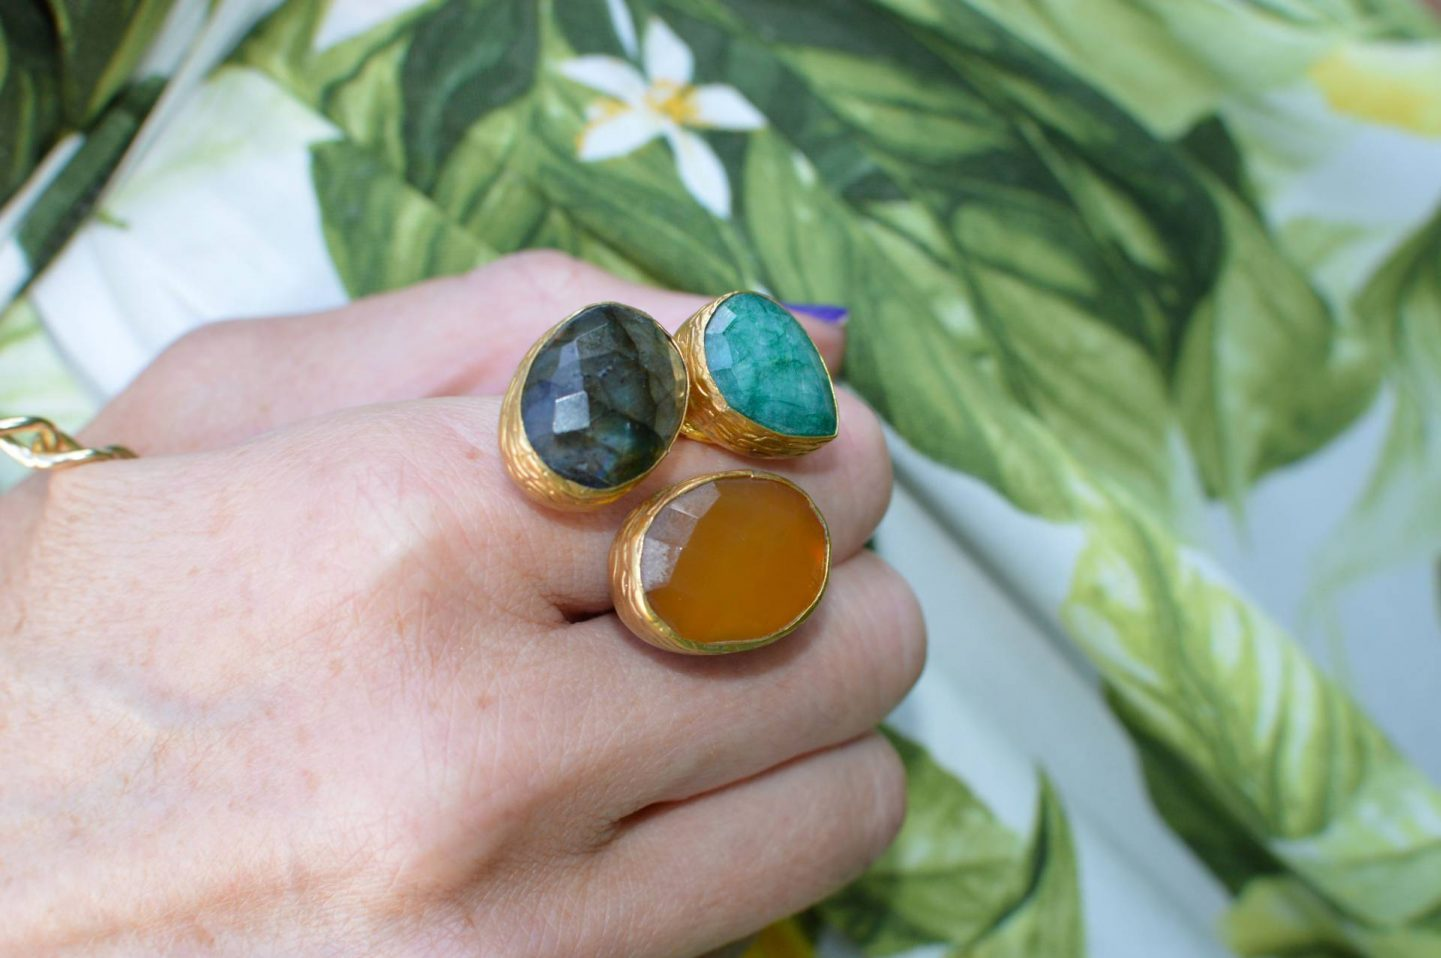 Ottoman Hands triple stone ring